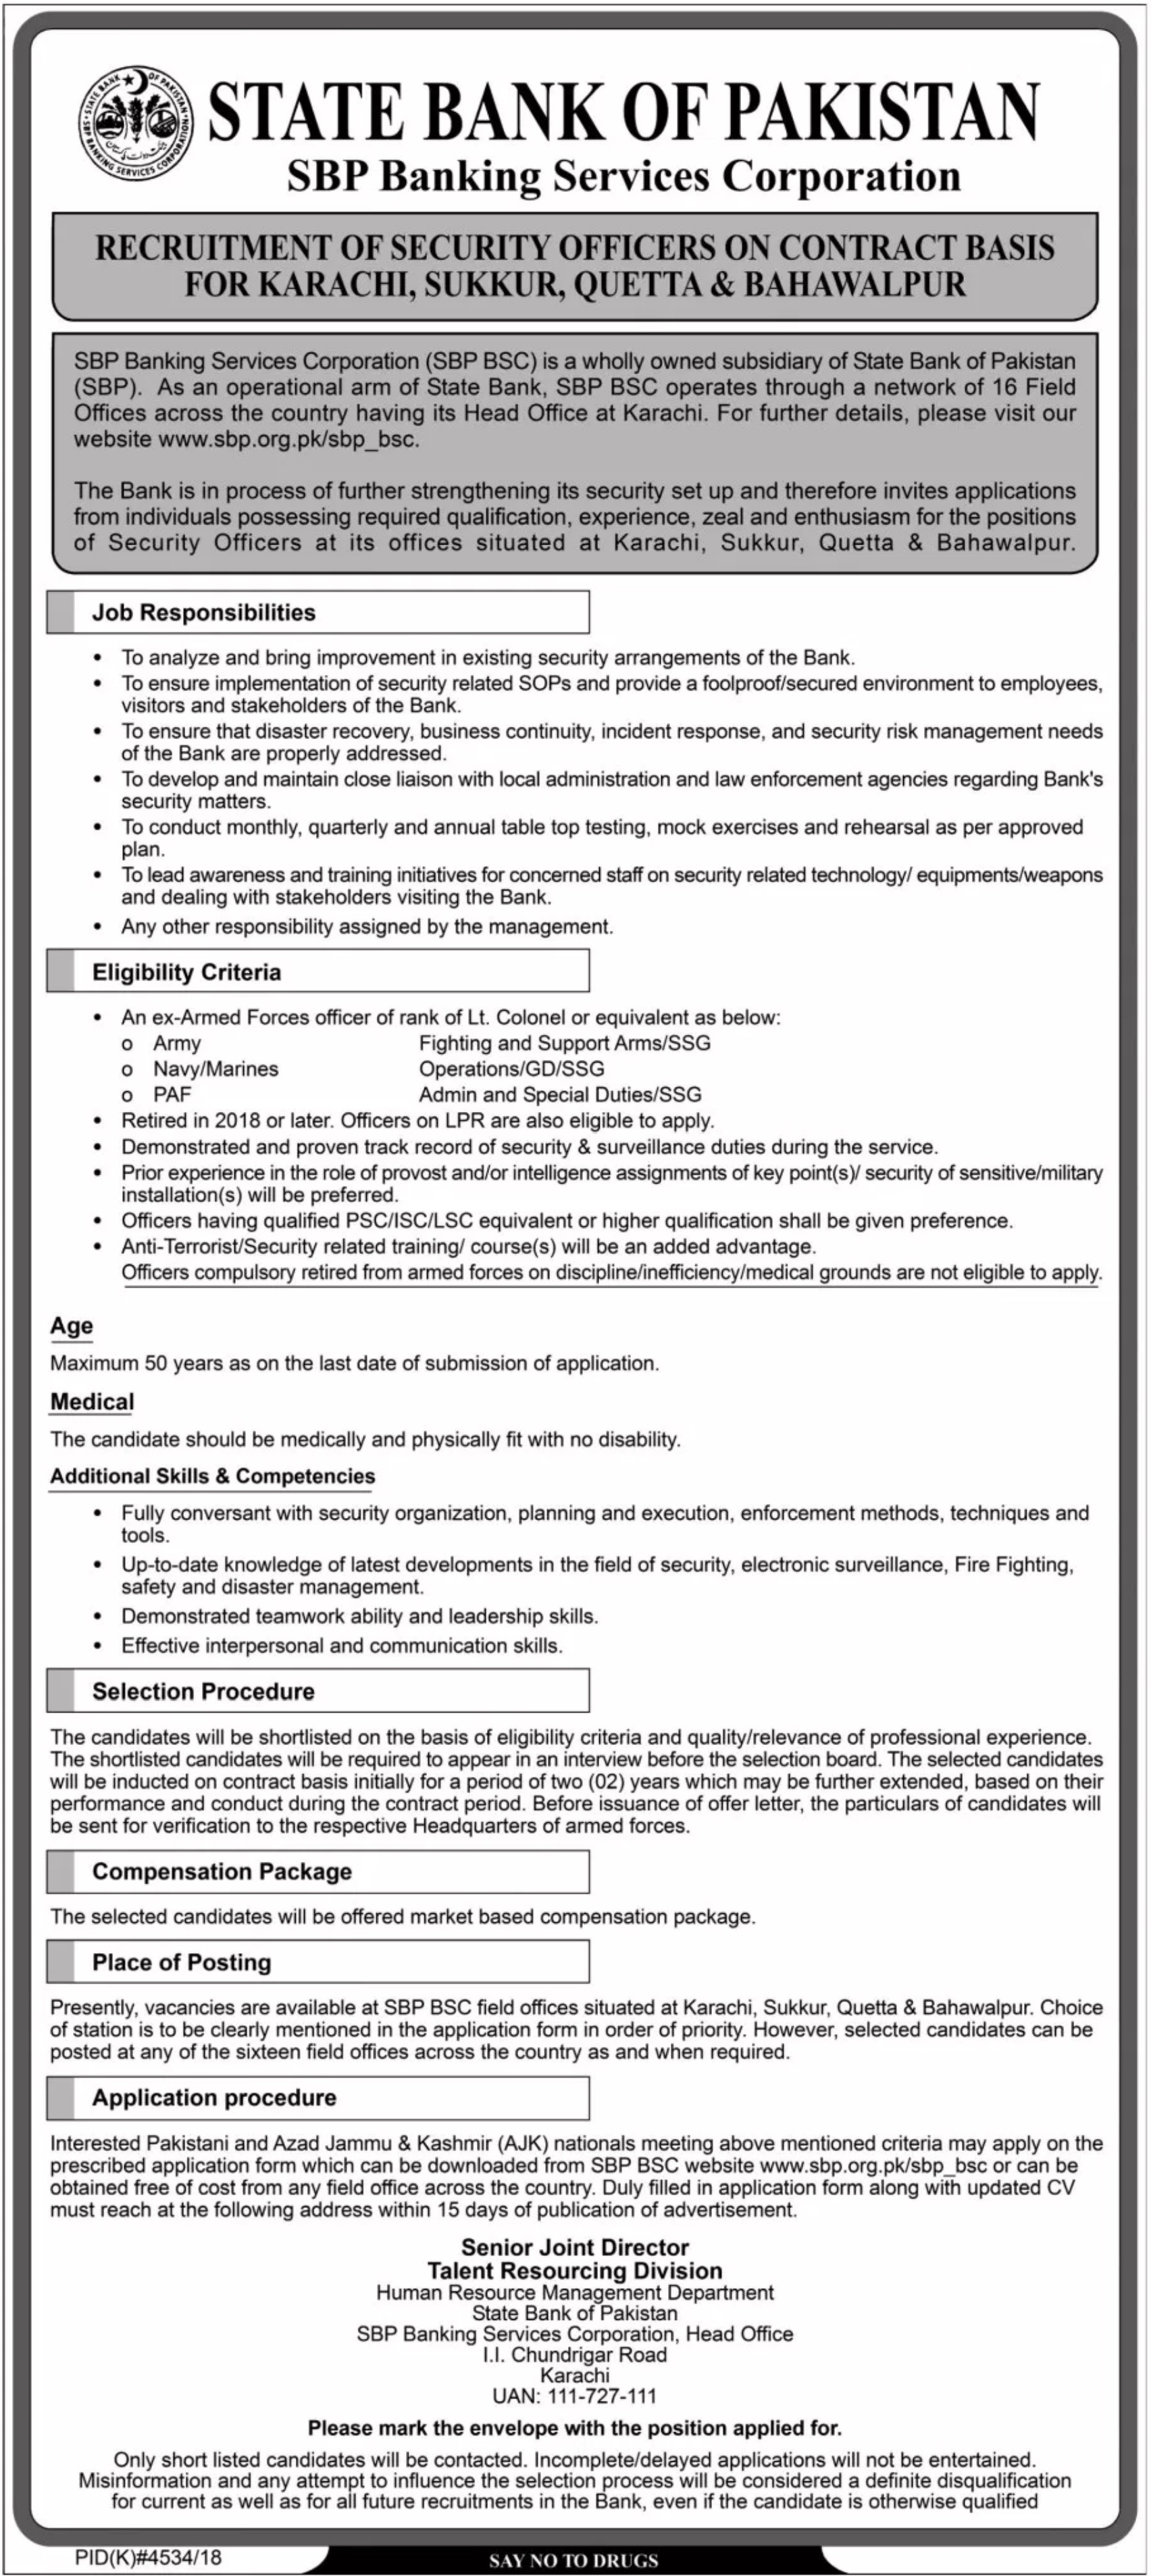 SBP Banking Services Corporation Jobs 2019 Security Officers